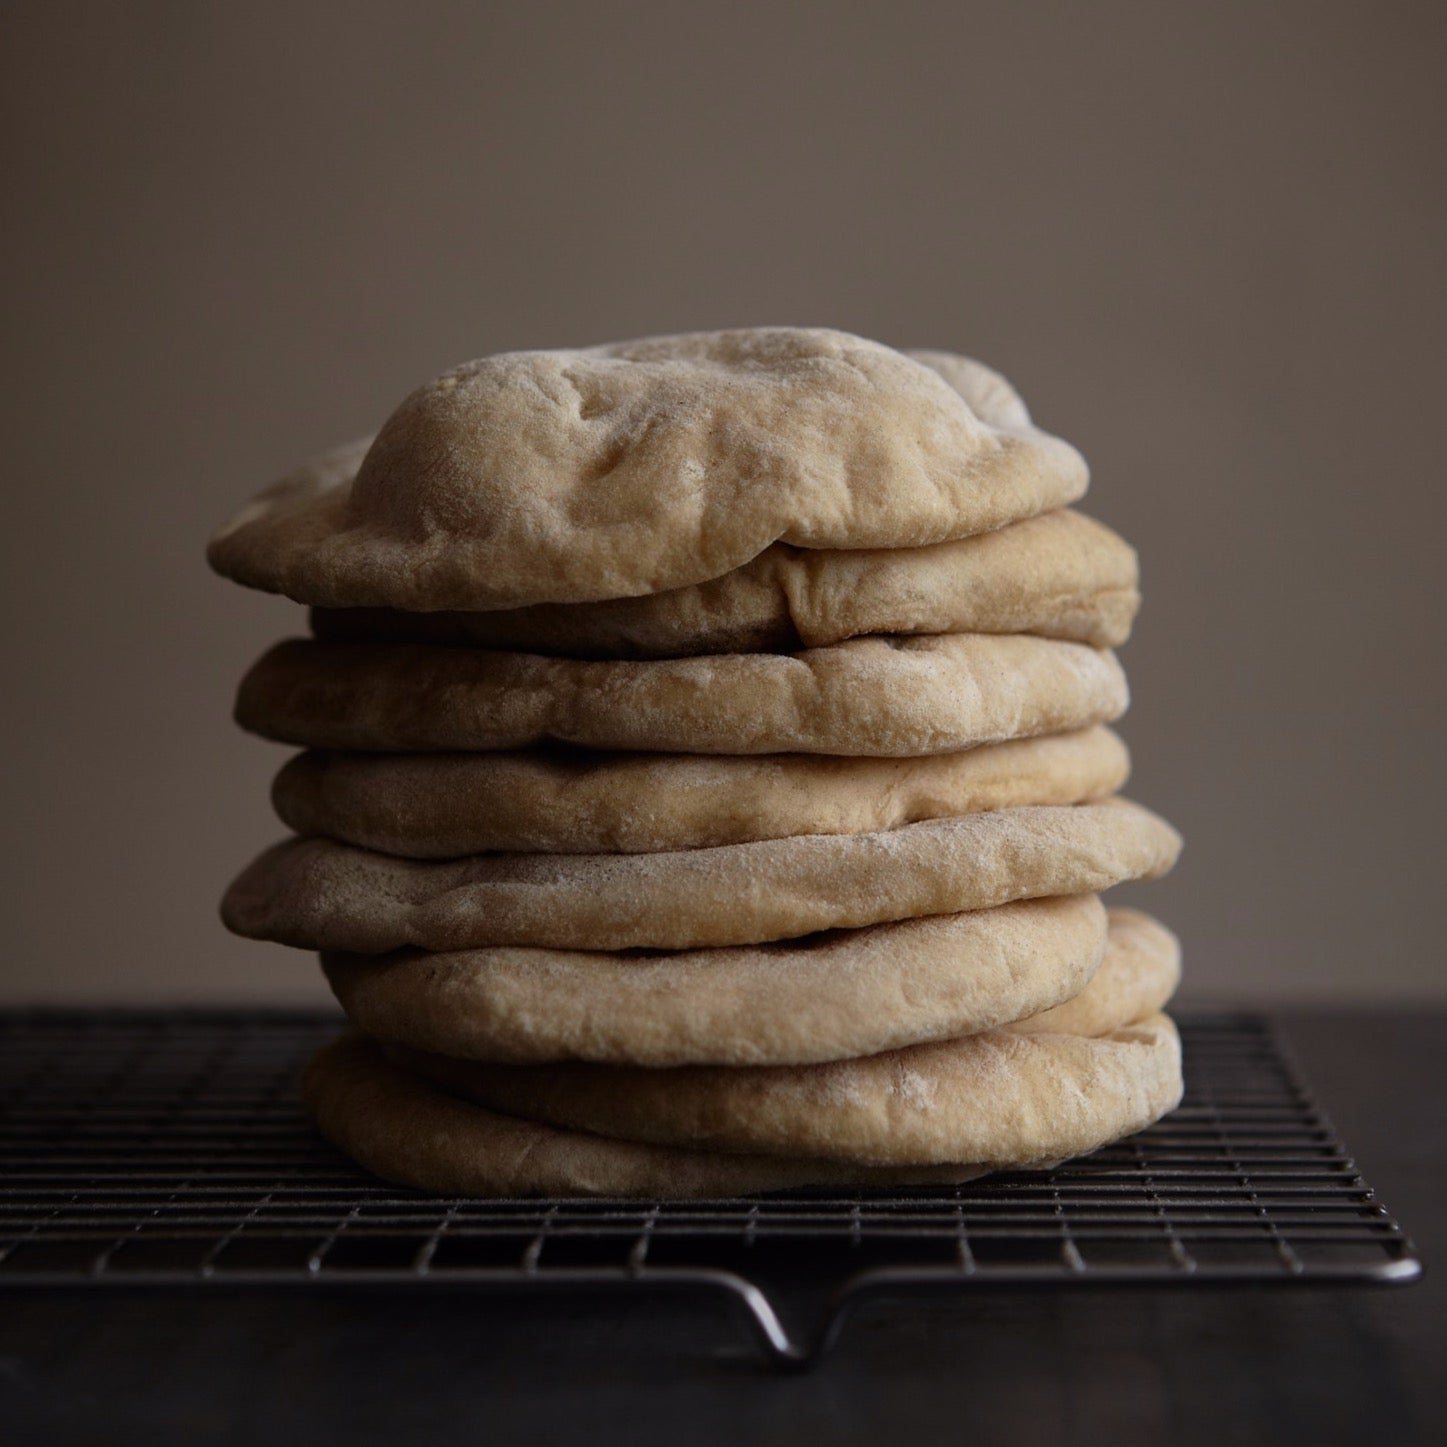 Pitta bread  - Saturday 12th December